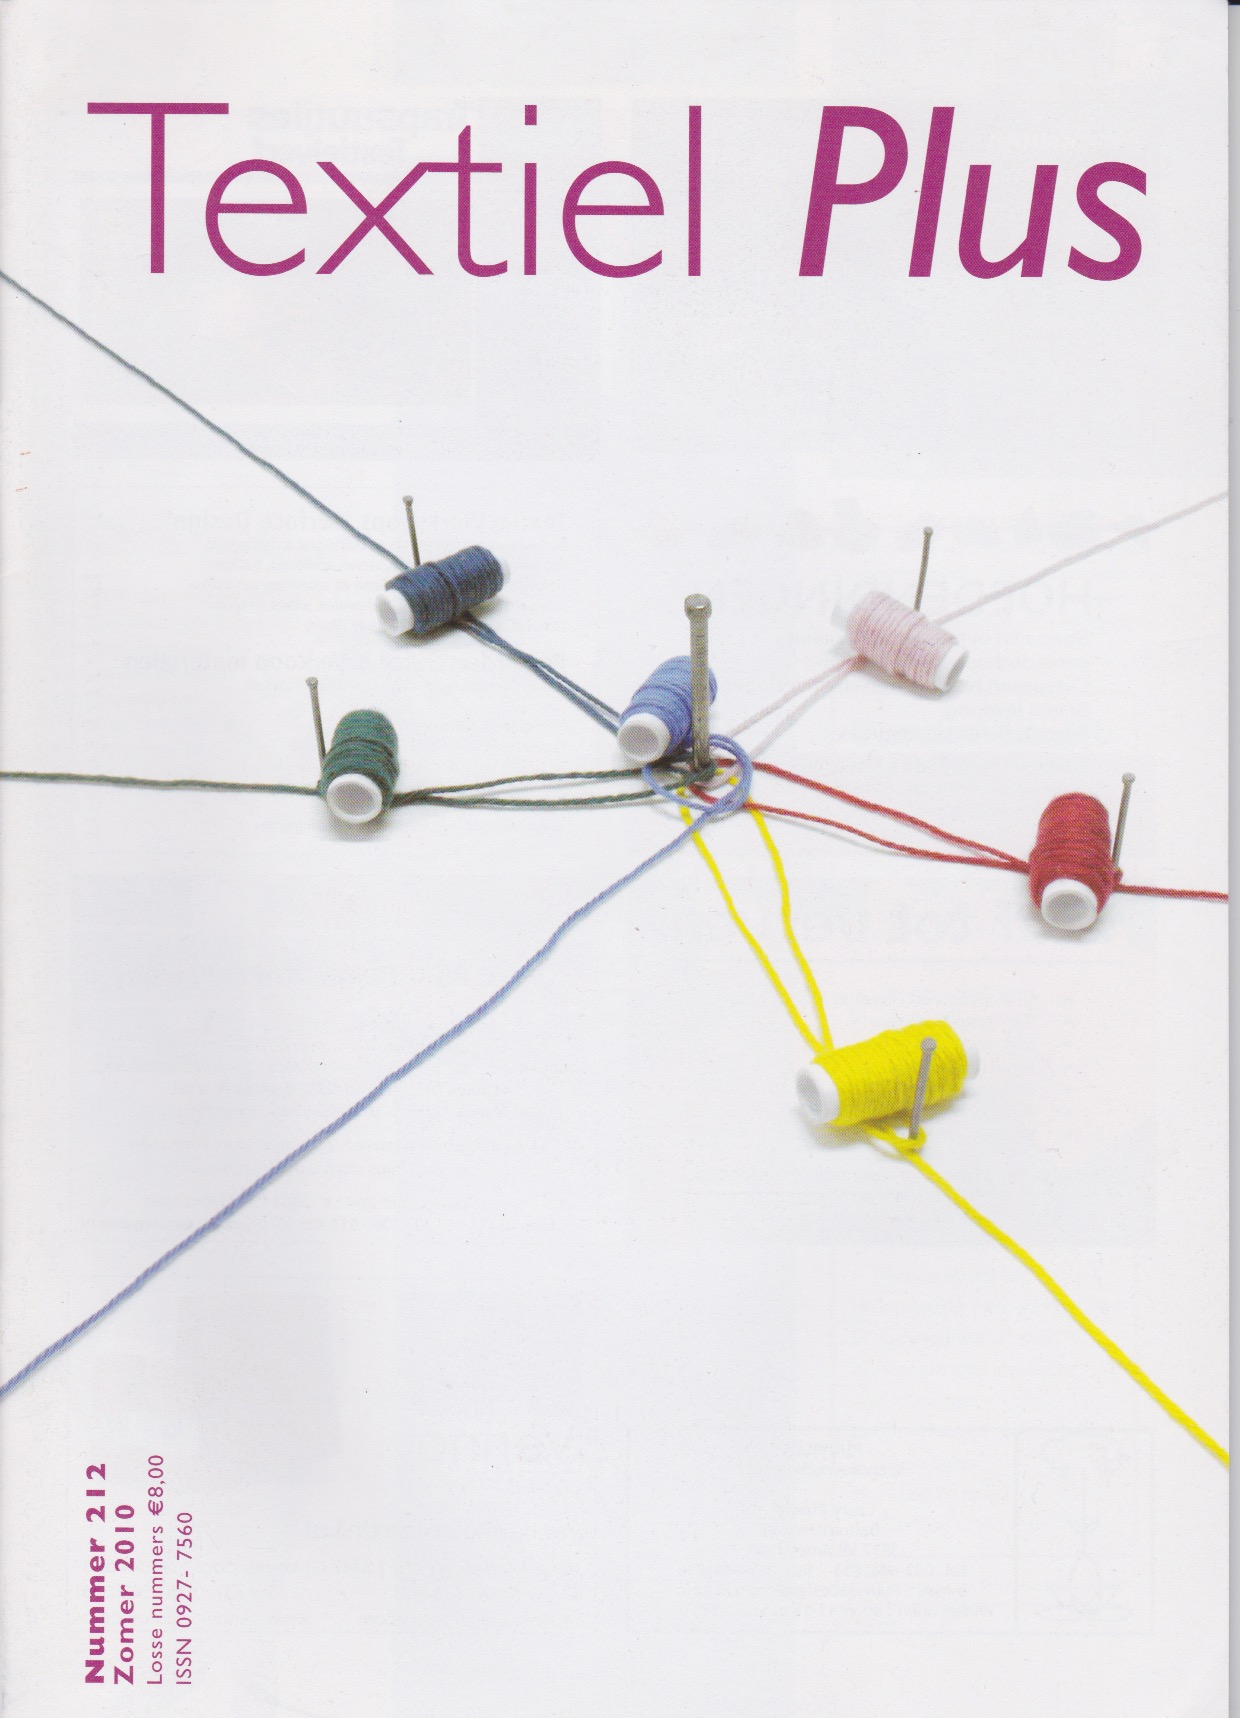 Textile Plus cover.jpeg